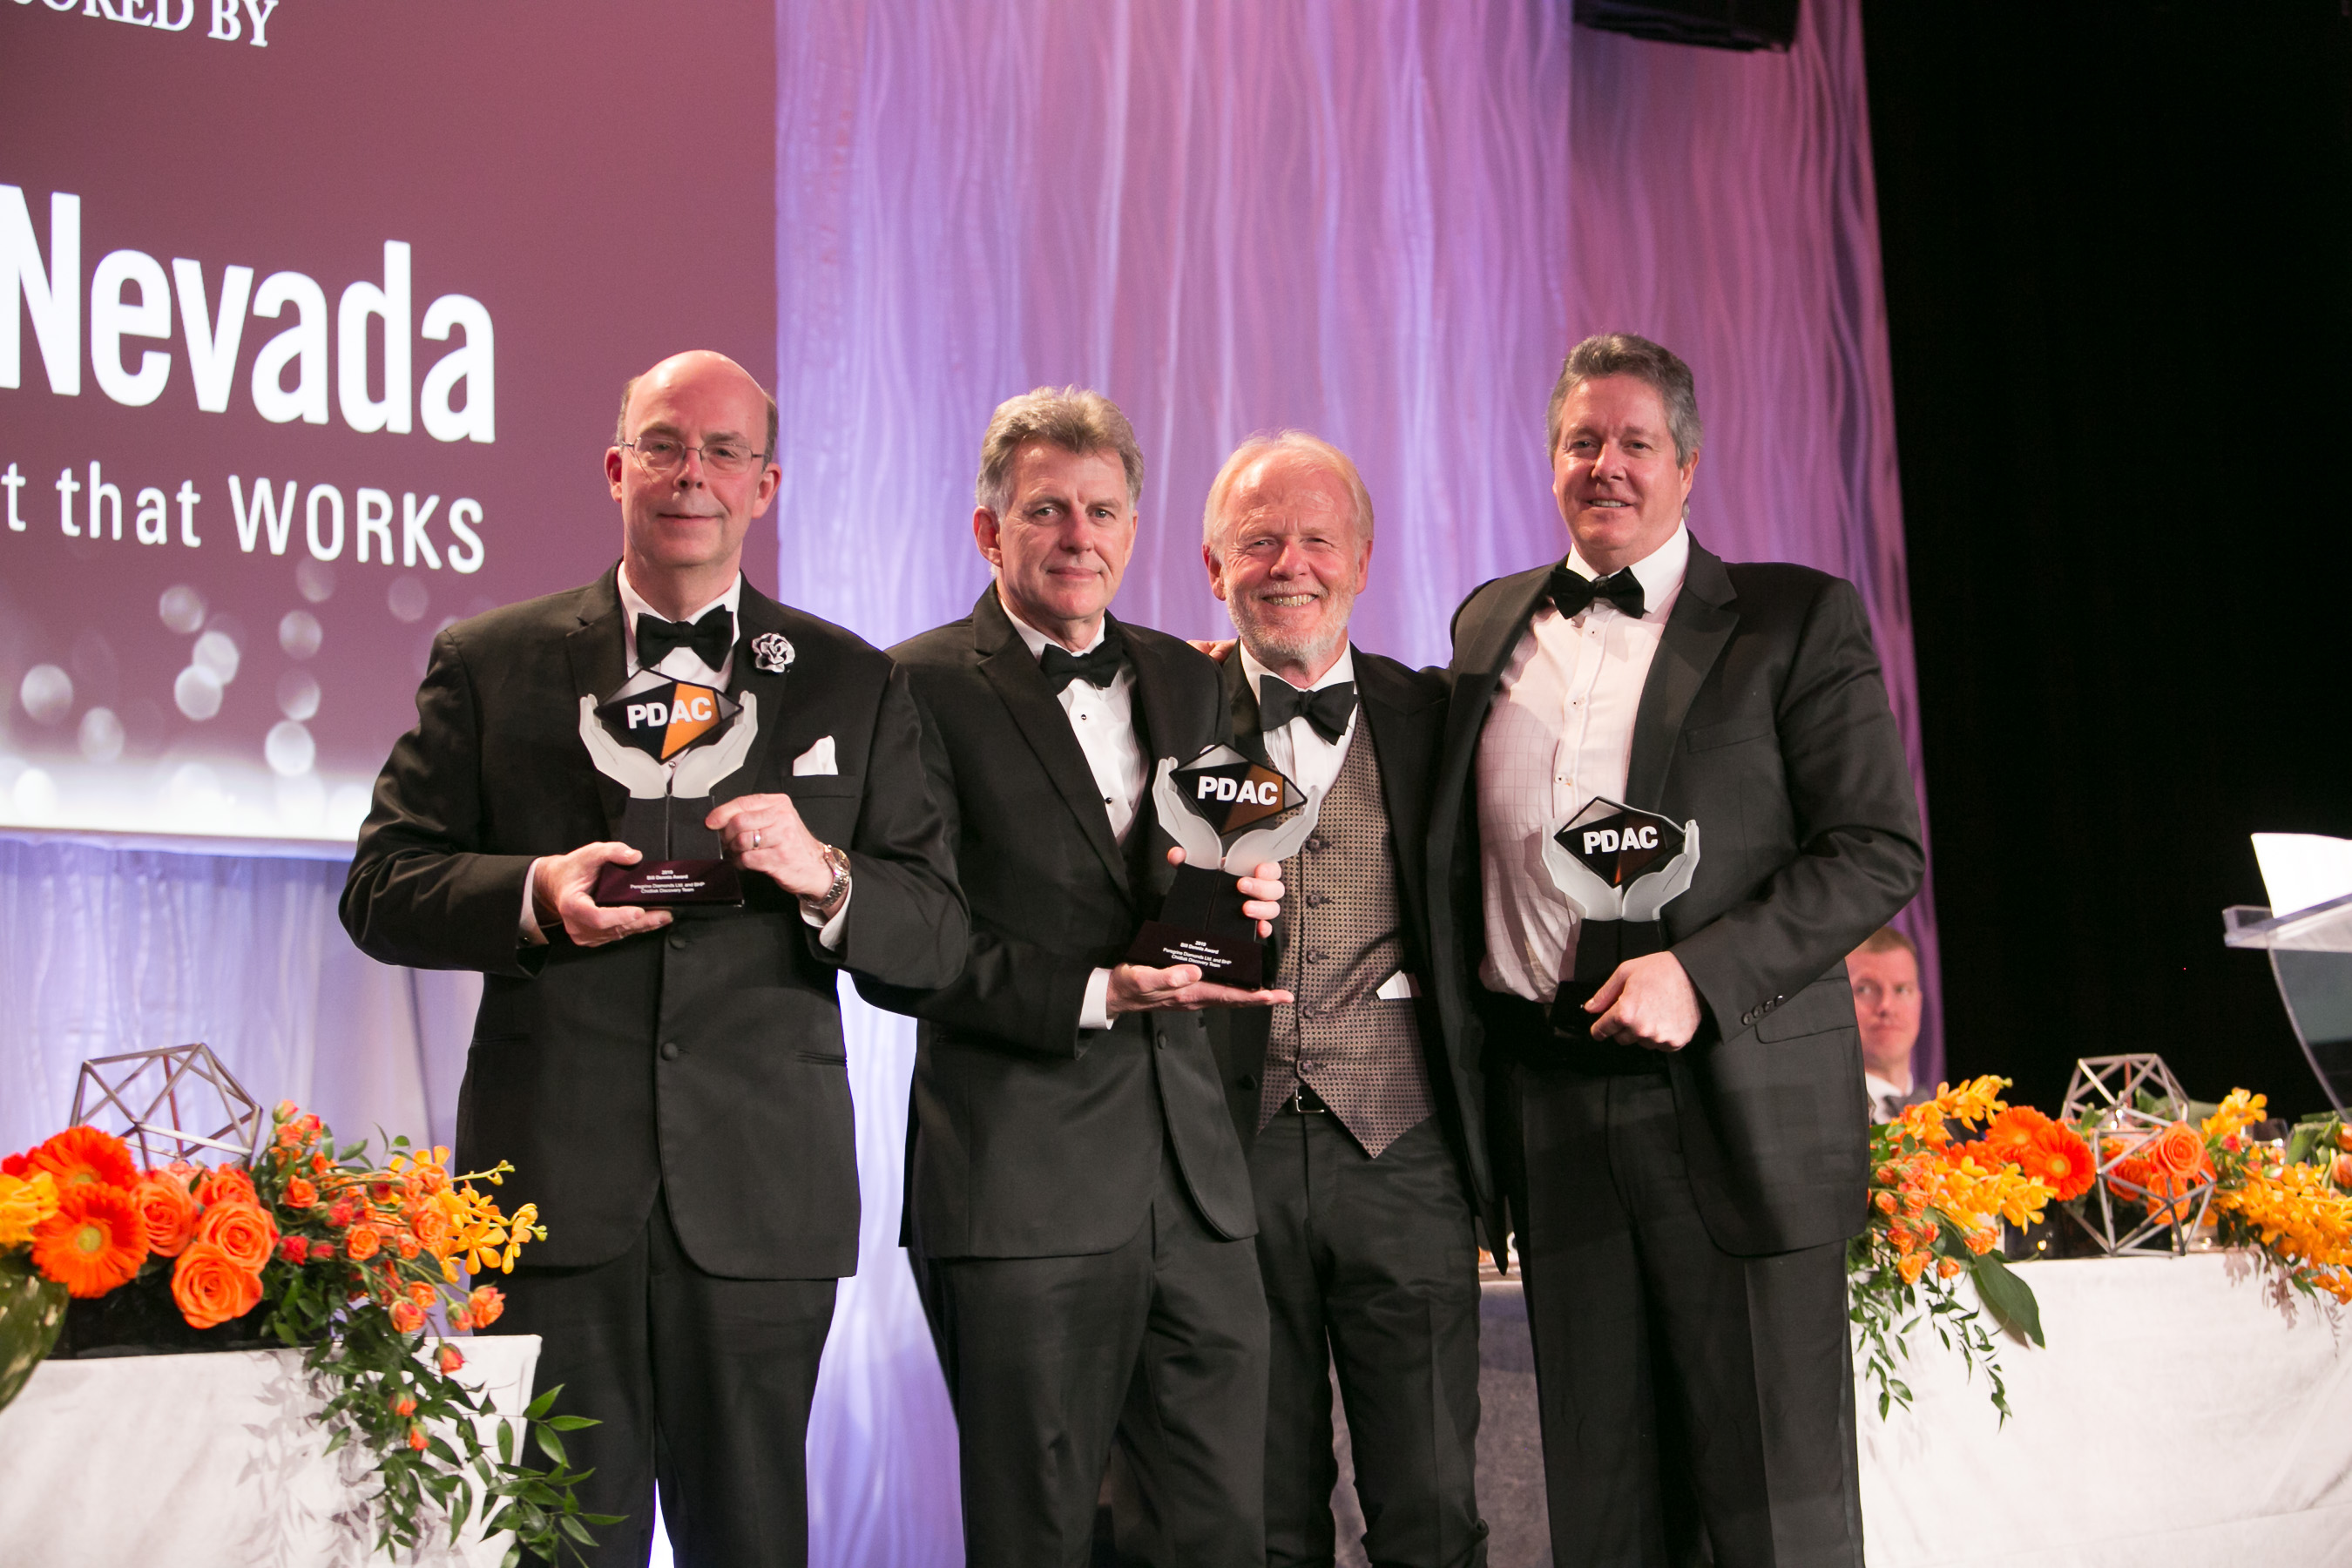 Bill Dennis Award - Peregrine Diamonds Ltd and BHP, Chidliak Discovery Team